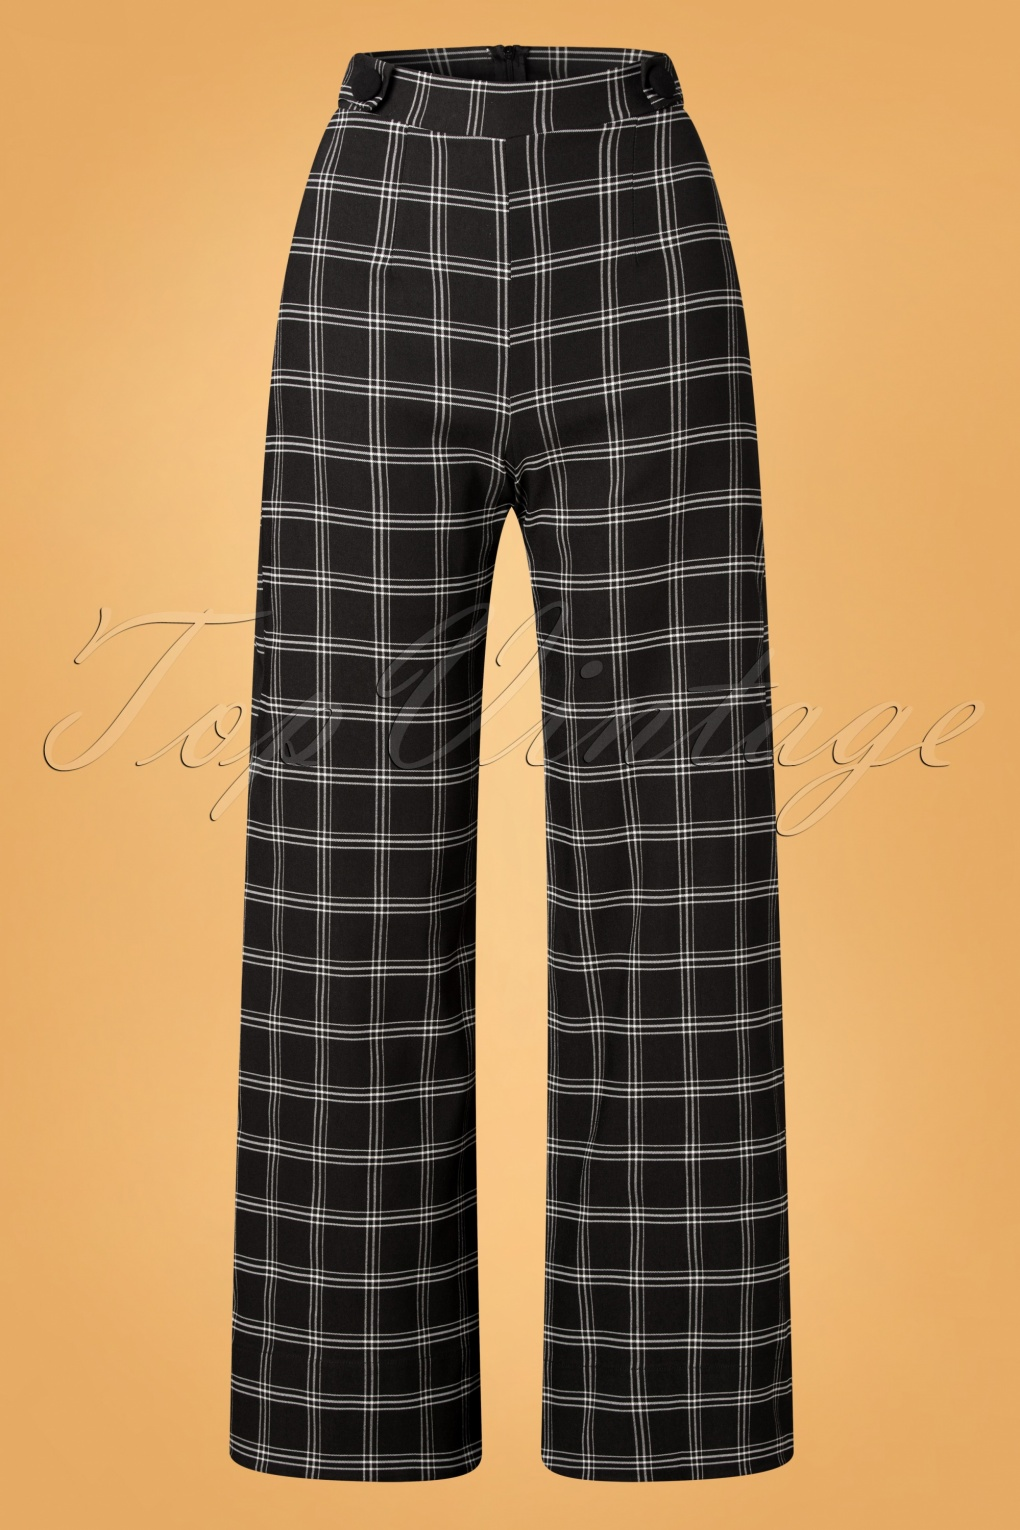 1940s Swing Pants & Sailor Trousers- Wide Leg, High Waist 40s Viola Wide Check Trousers in Black and White £48.84 AT vintagedancer.com